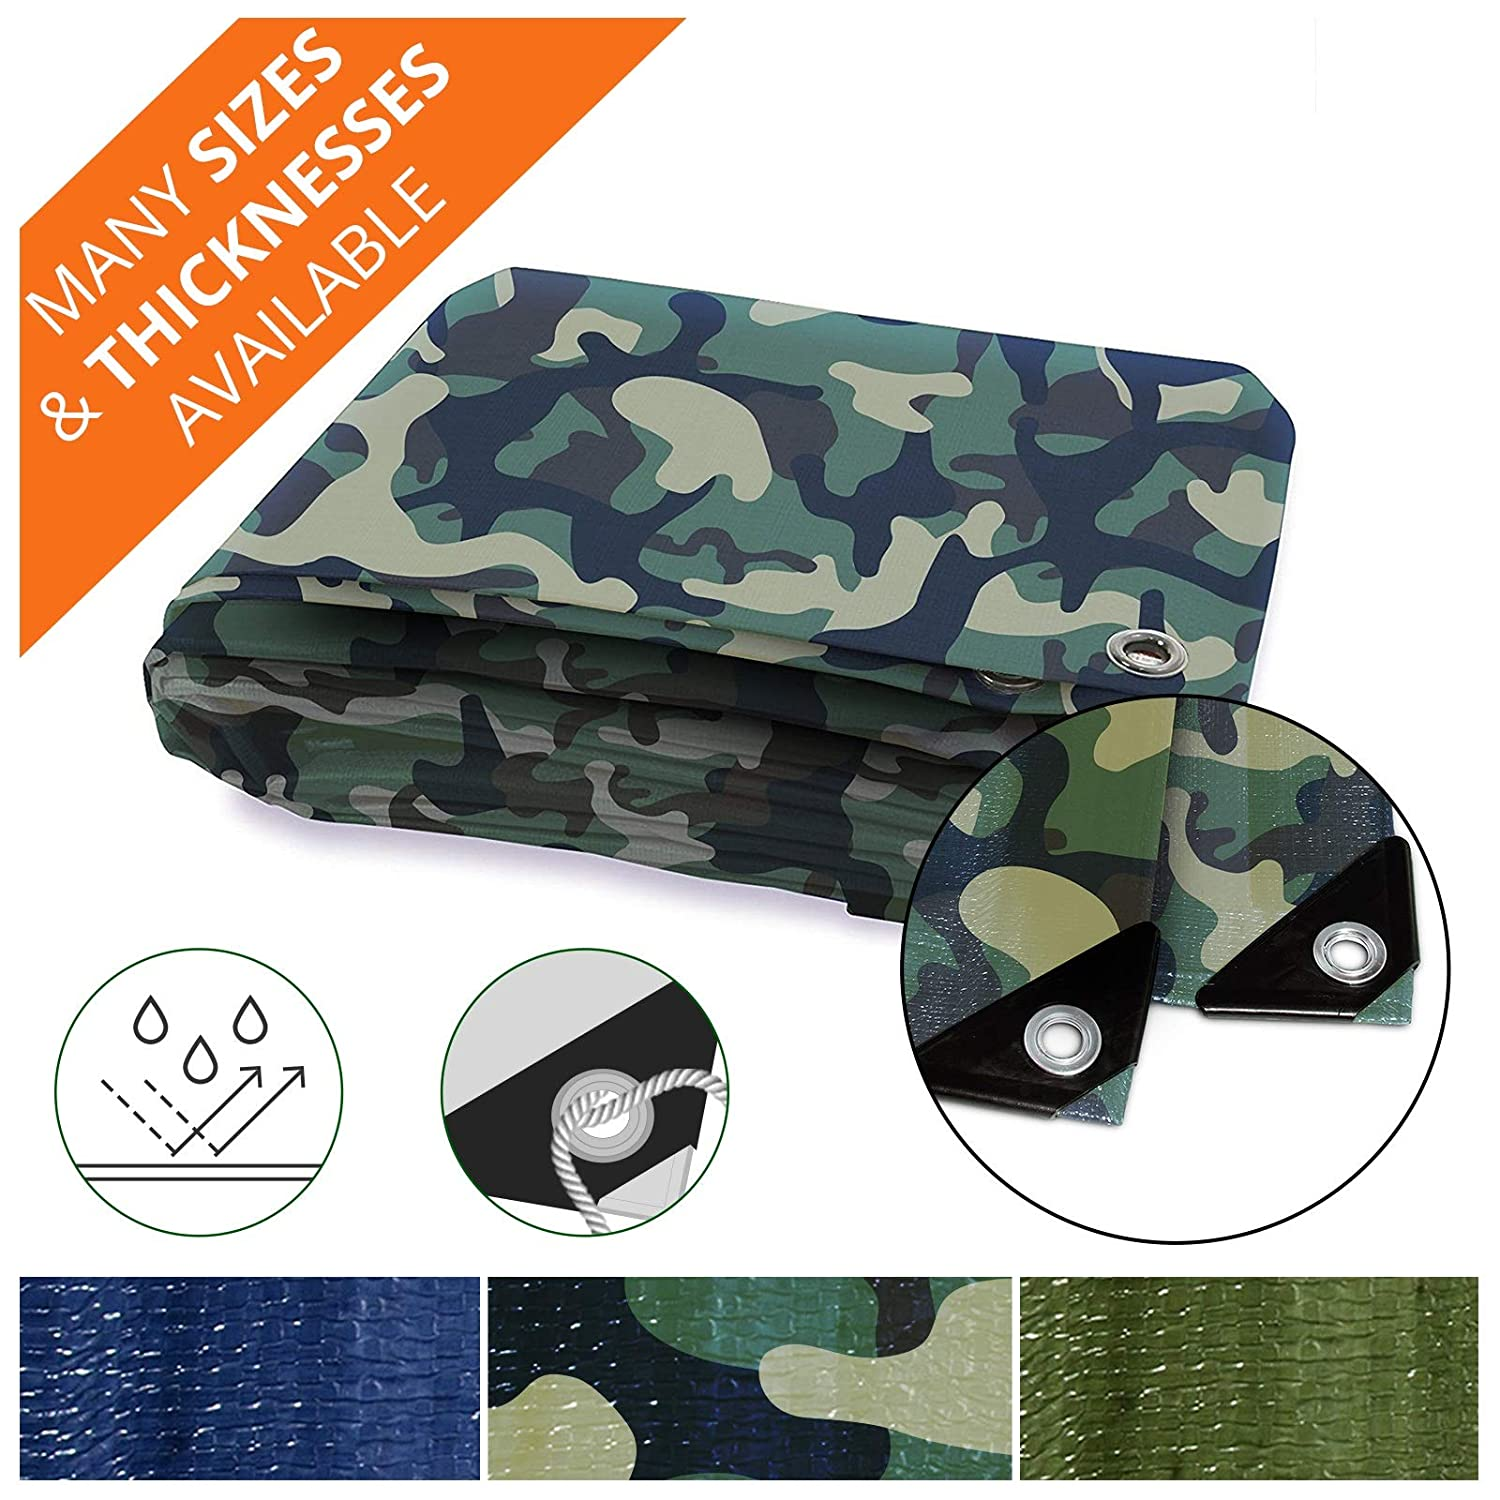 Heavy Duty Tarps | Waterproof Ground Tent Trailer Cover | Multilayered Tarpaulin in Many Sizes and Thicknesses | 10 Mil - Green - 8' x 10' casa pura 4058171403768